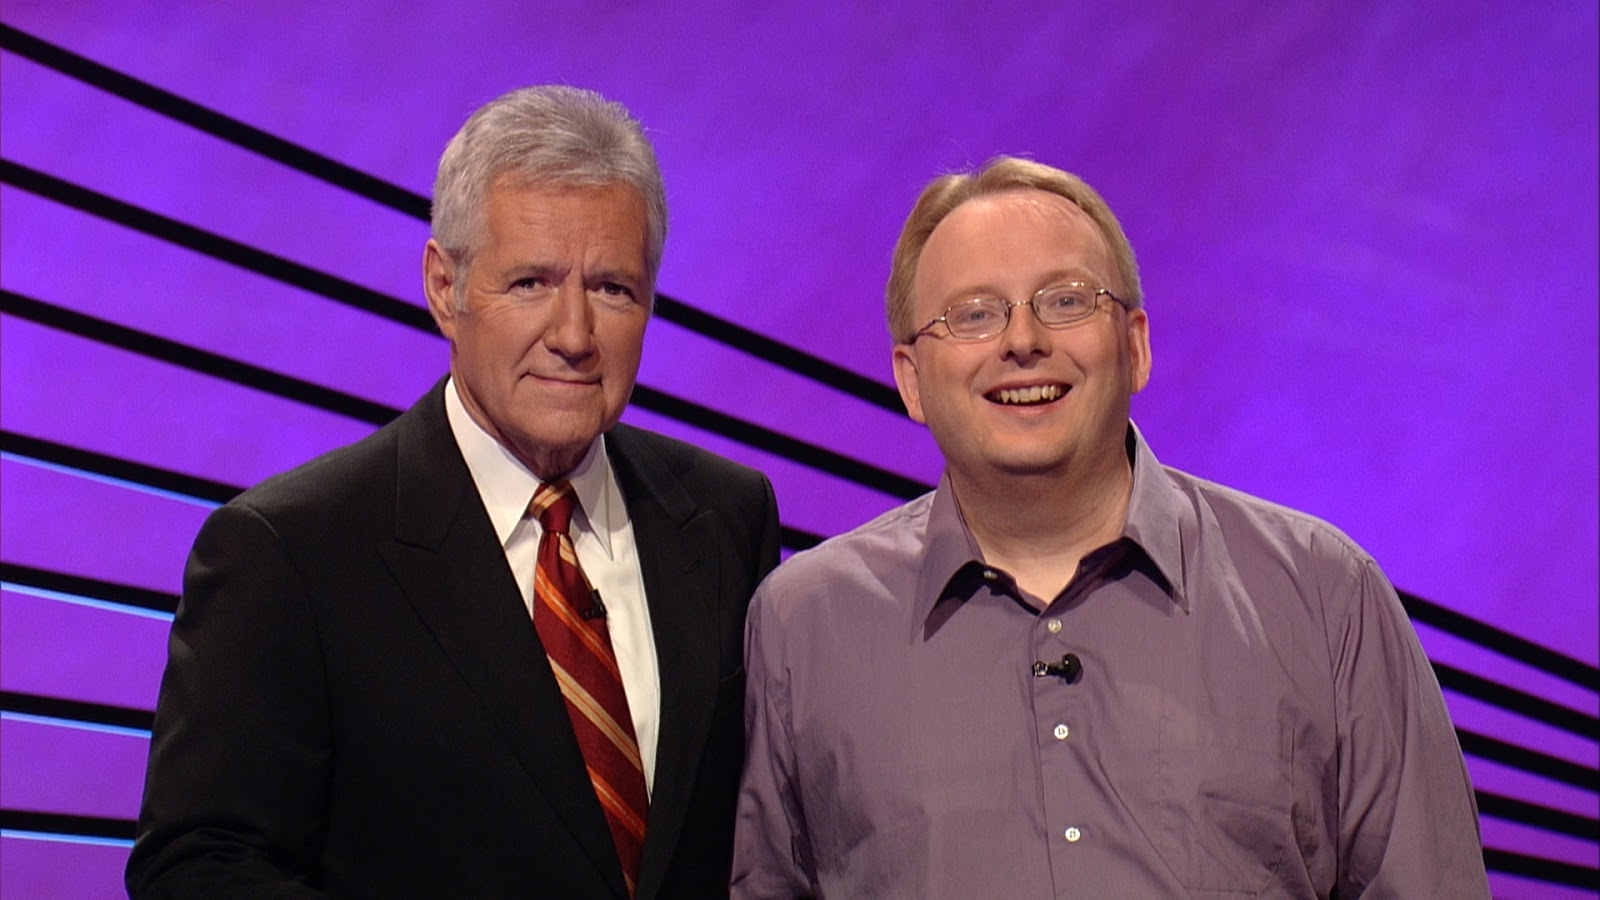 Q & A with Alistair Bell! – The Jeopardy! Fan